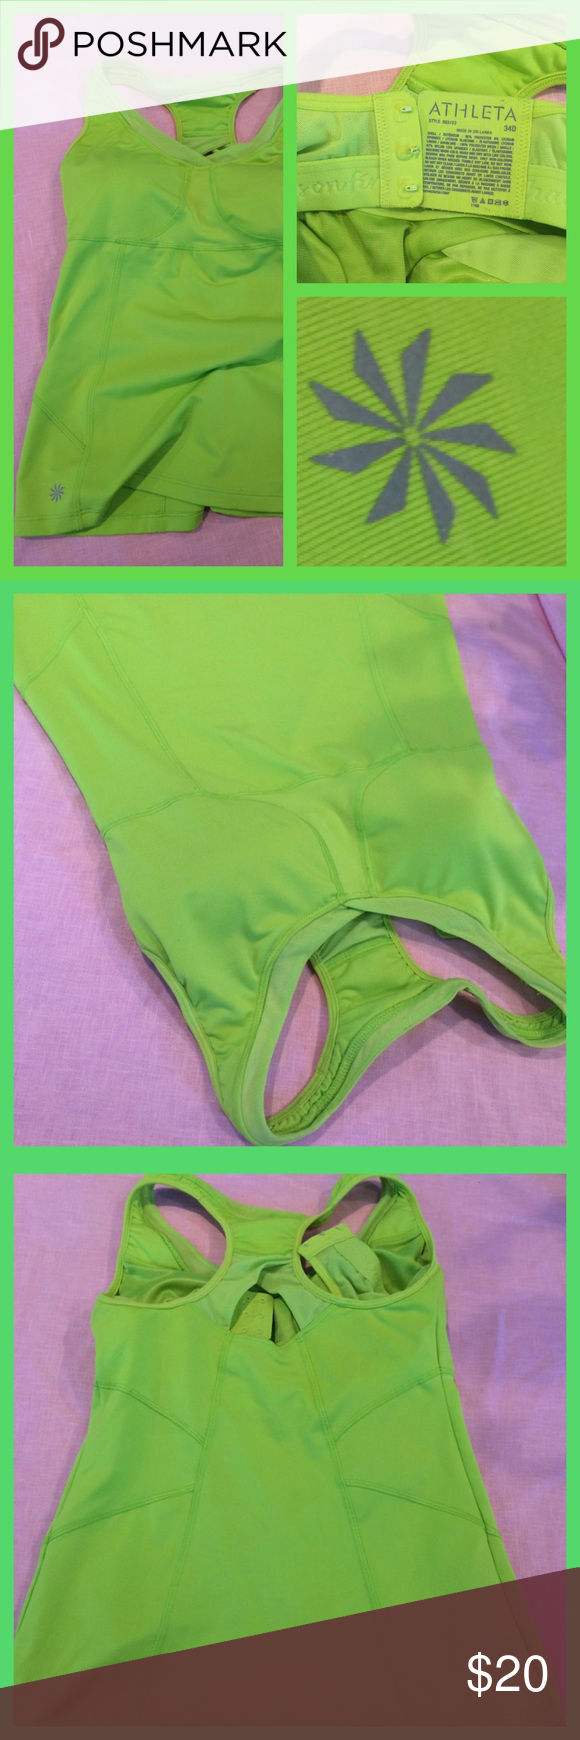 """Lime Athleta Bra Athletic Top 34D NEW Athleta Racerback athletic built in bra top size 34D. Tennis top. Lime. Length: 21"""". Good quality. No spots or stains. Thanks for looking! Athleta Tops Tank Tops"""